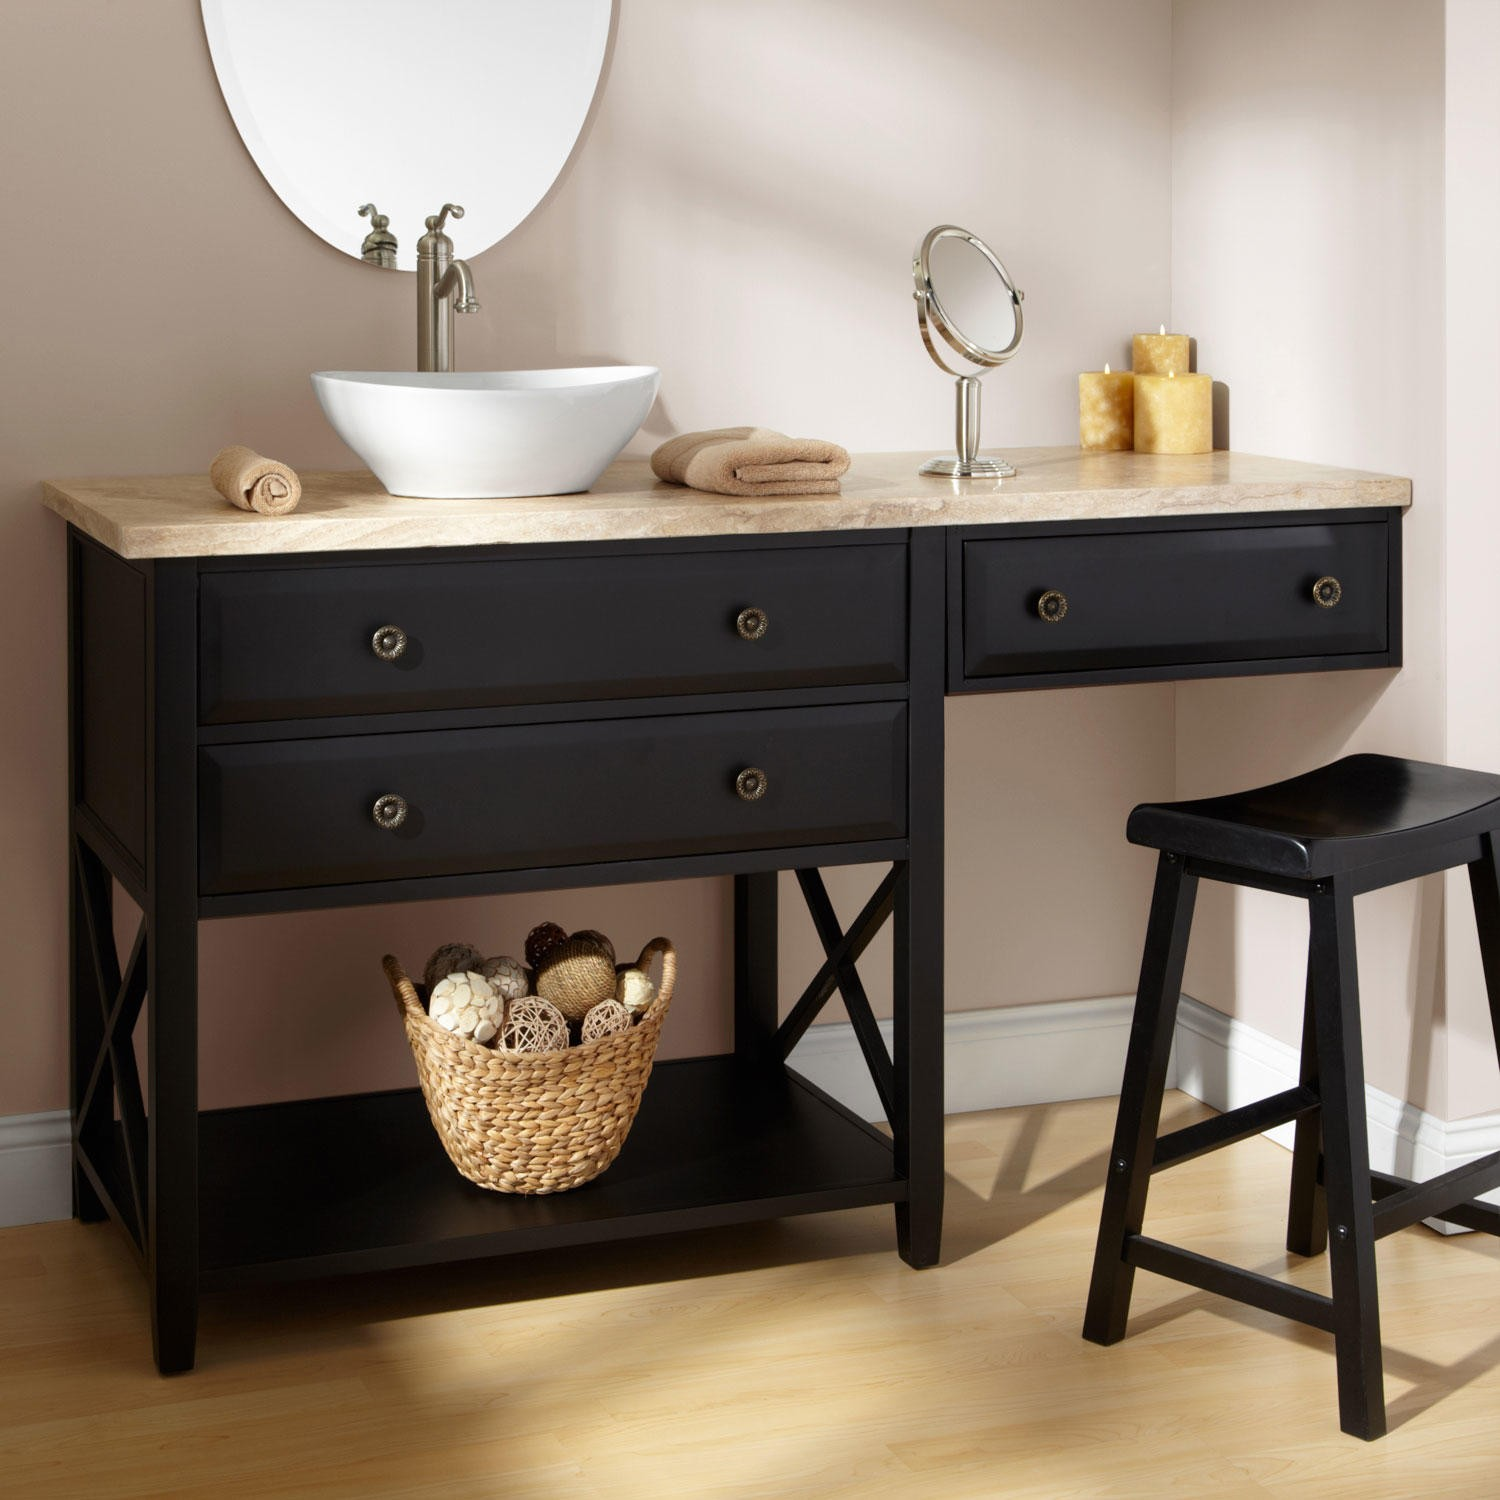 Bathroom Vanity With Makeup Area Large And Beautiful Photos Photo To Select Bathroom Vanity